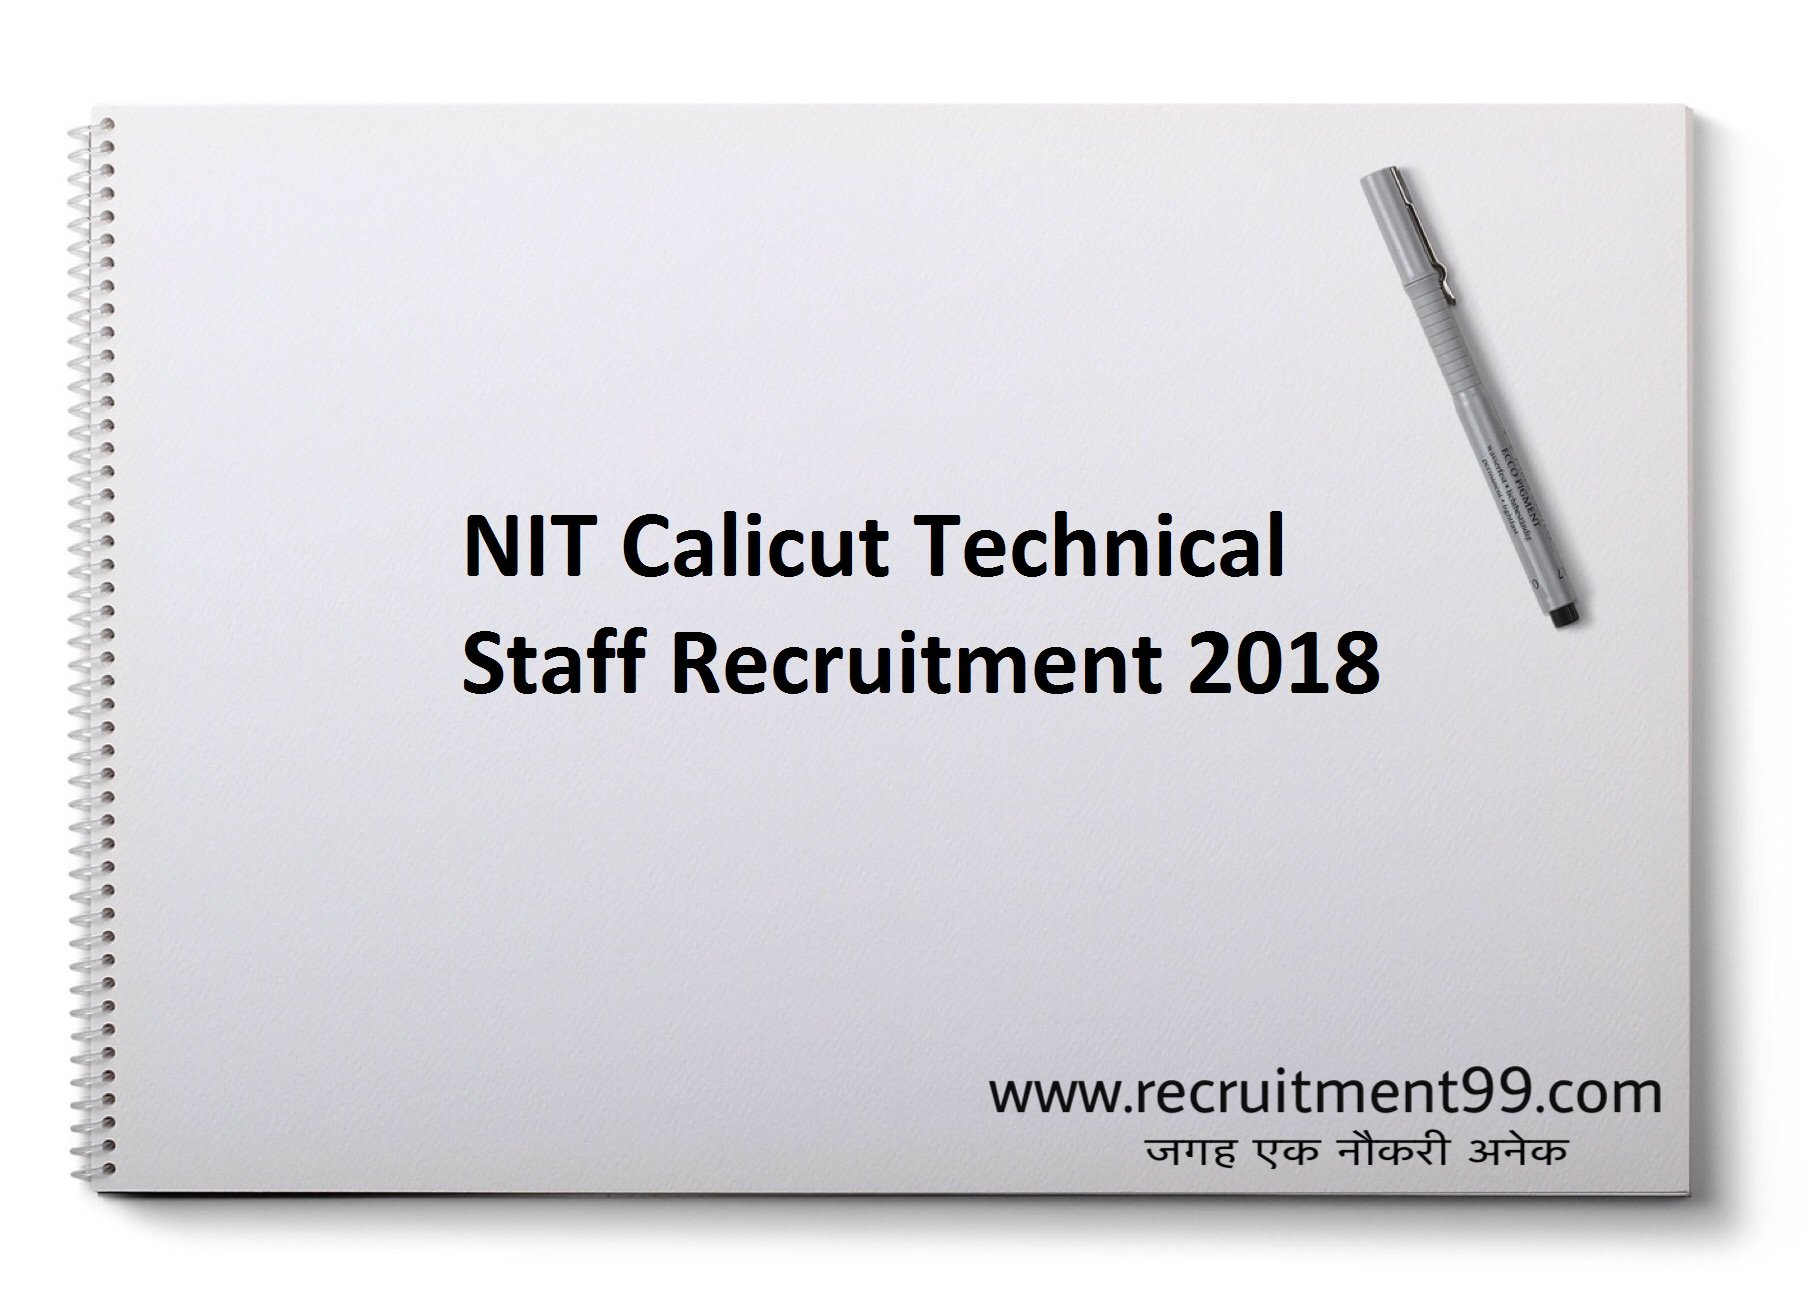 NIT Calicut Technical Staff Recruitment Admit Card Result 2018